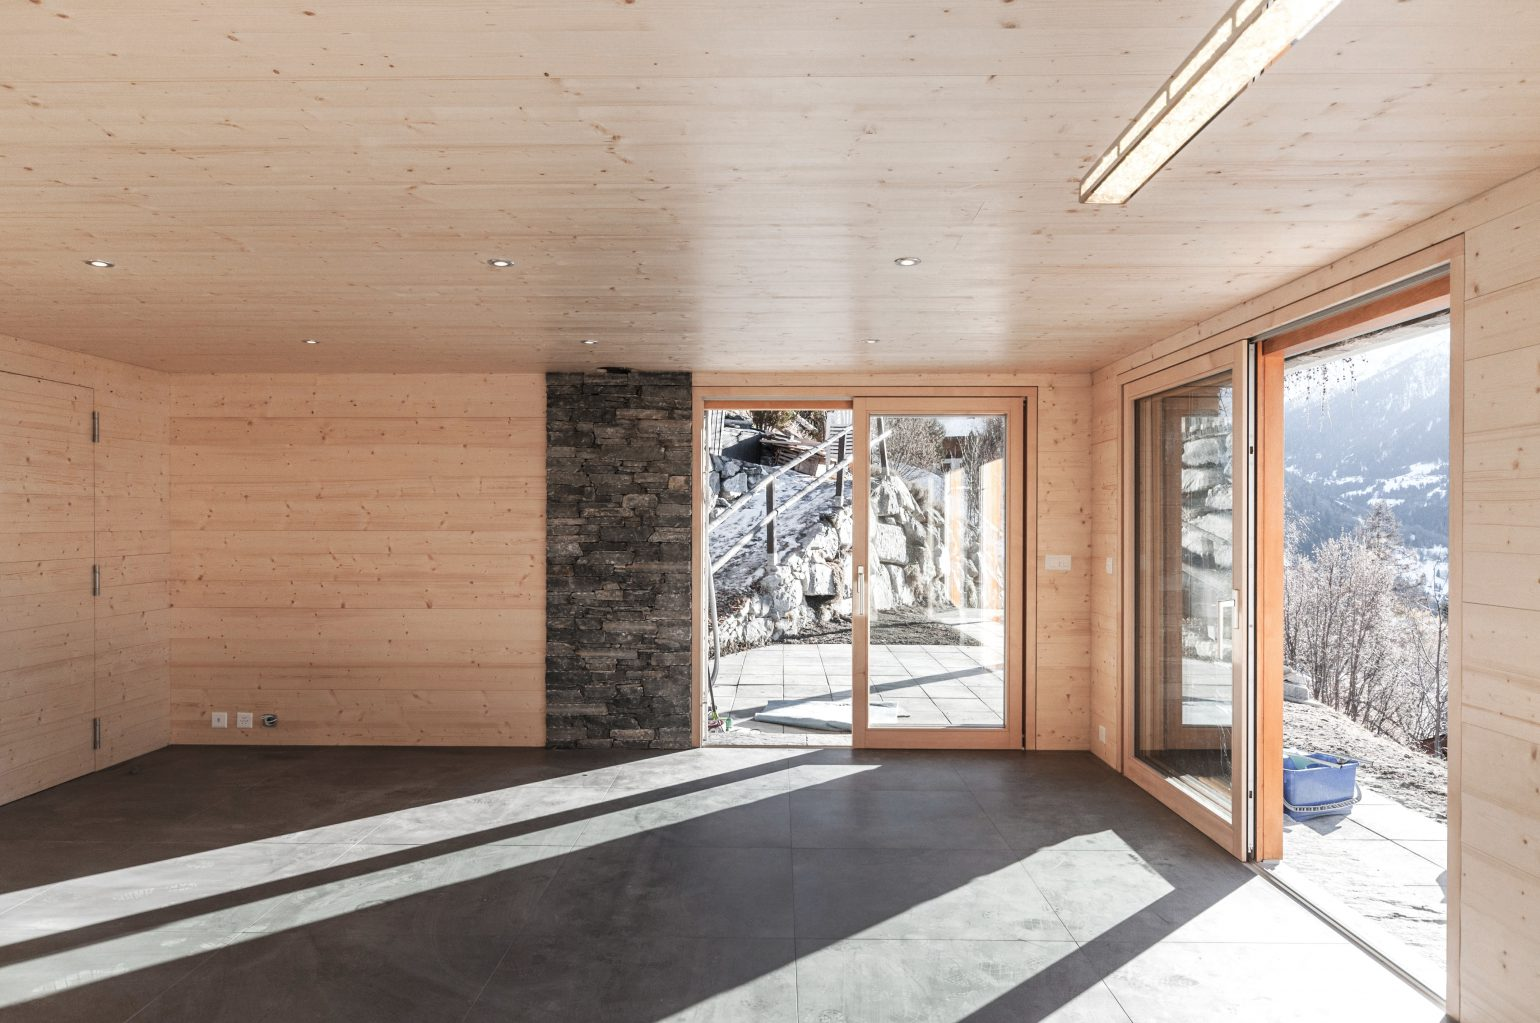 transformation-rénovation-chalet-coulon-veysonnaz-françois-meyer-architecture-sion-04